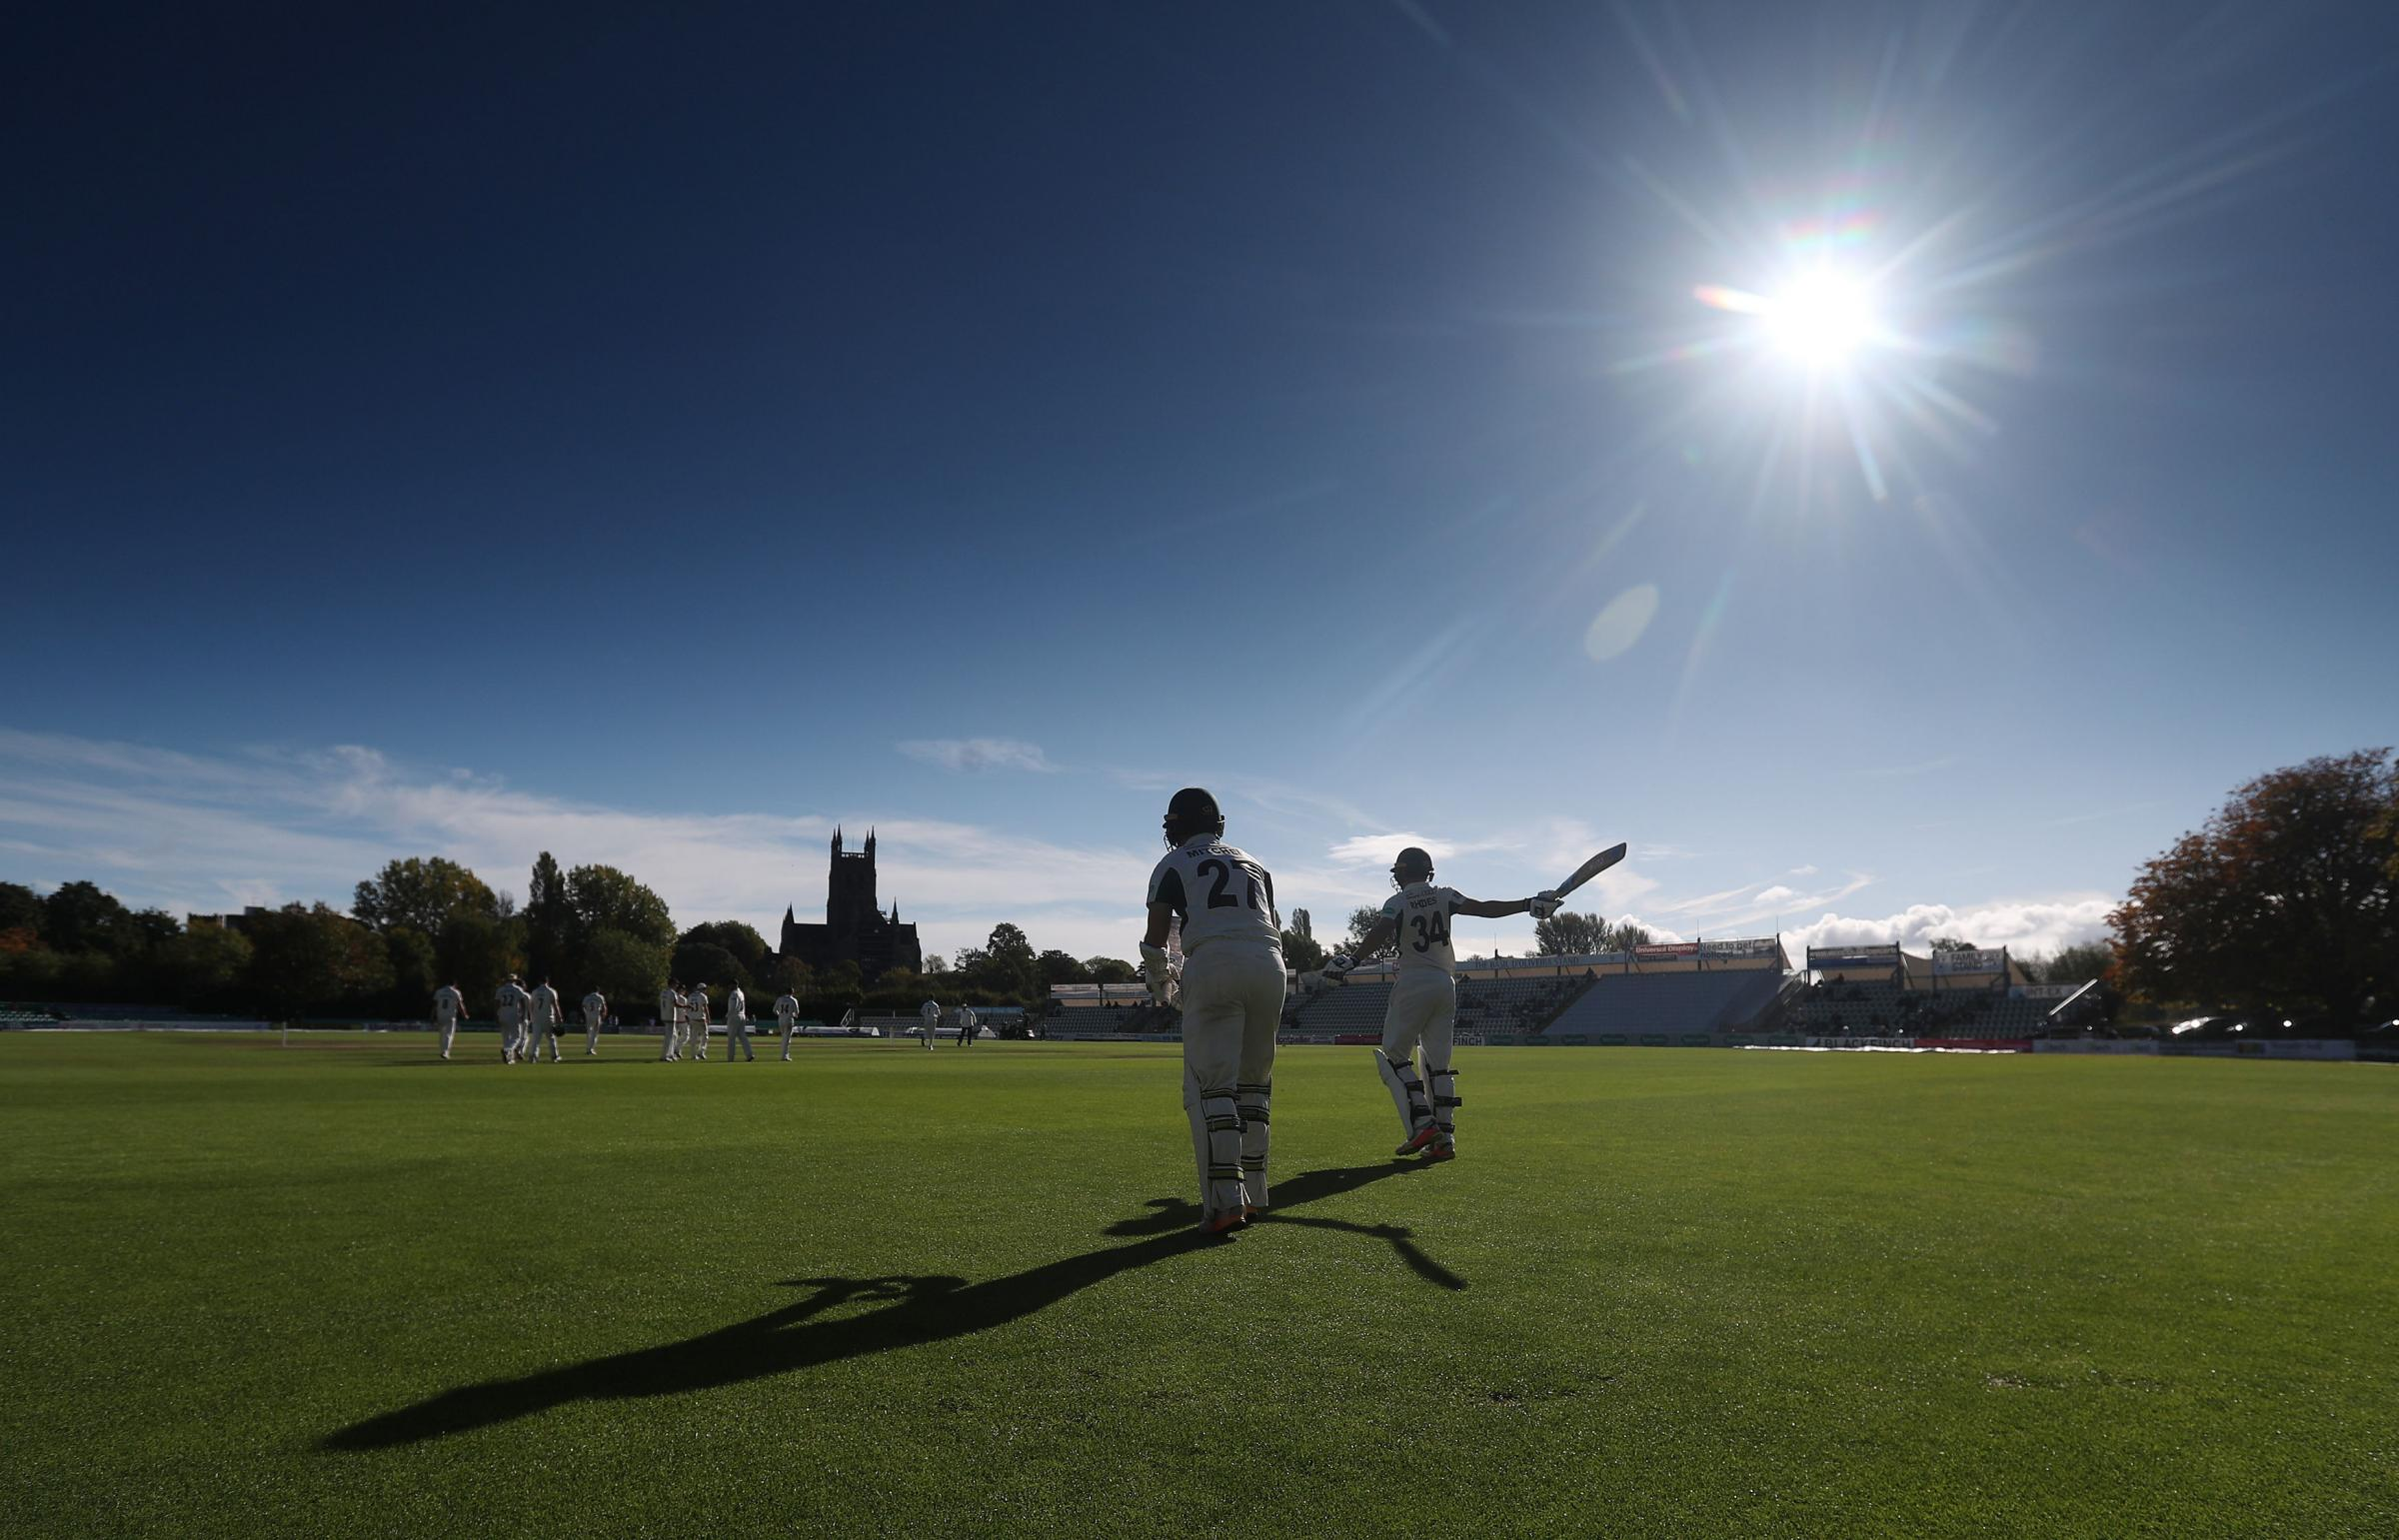 Cricket: Eight days of internationals to take place at Worcester